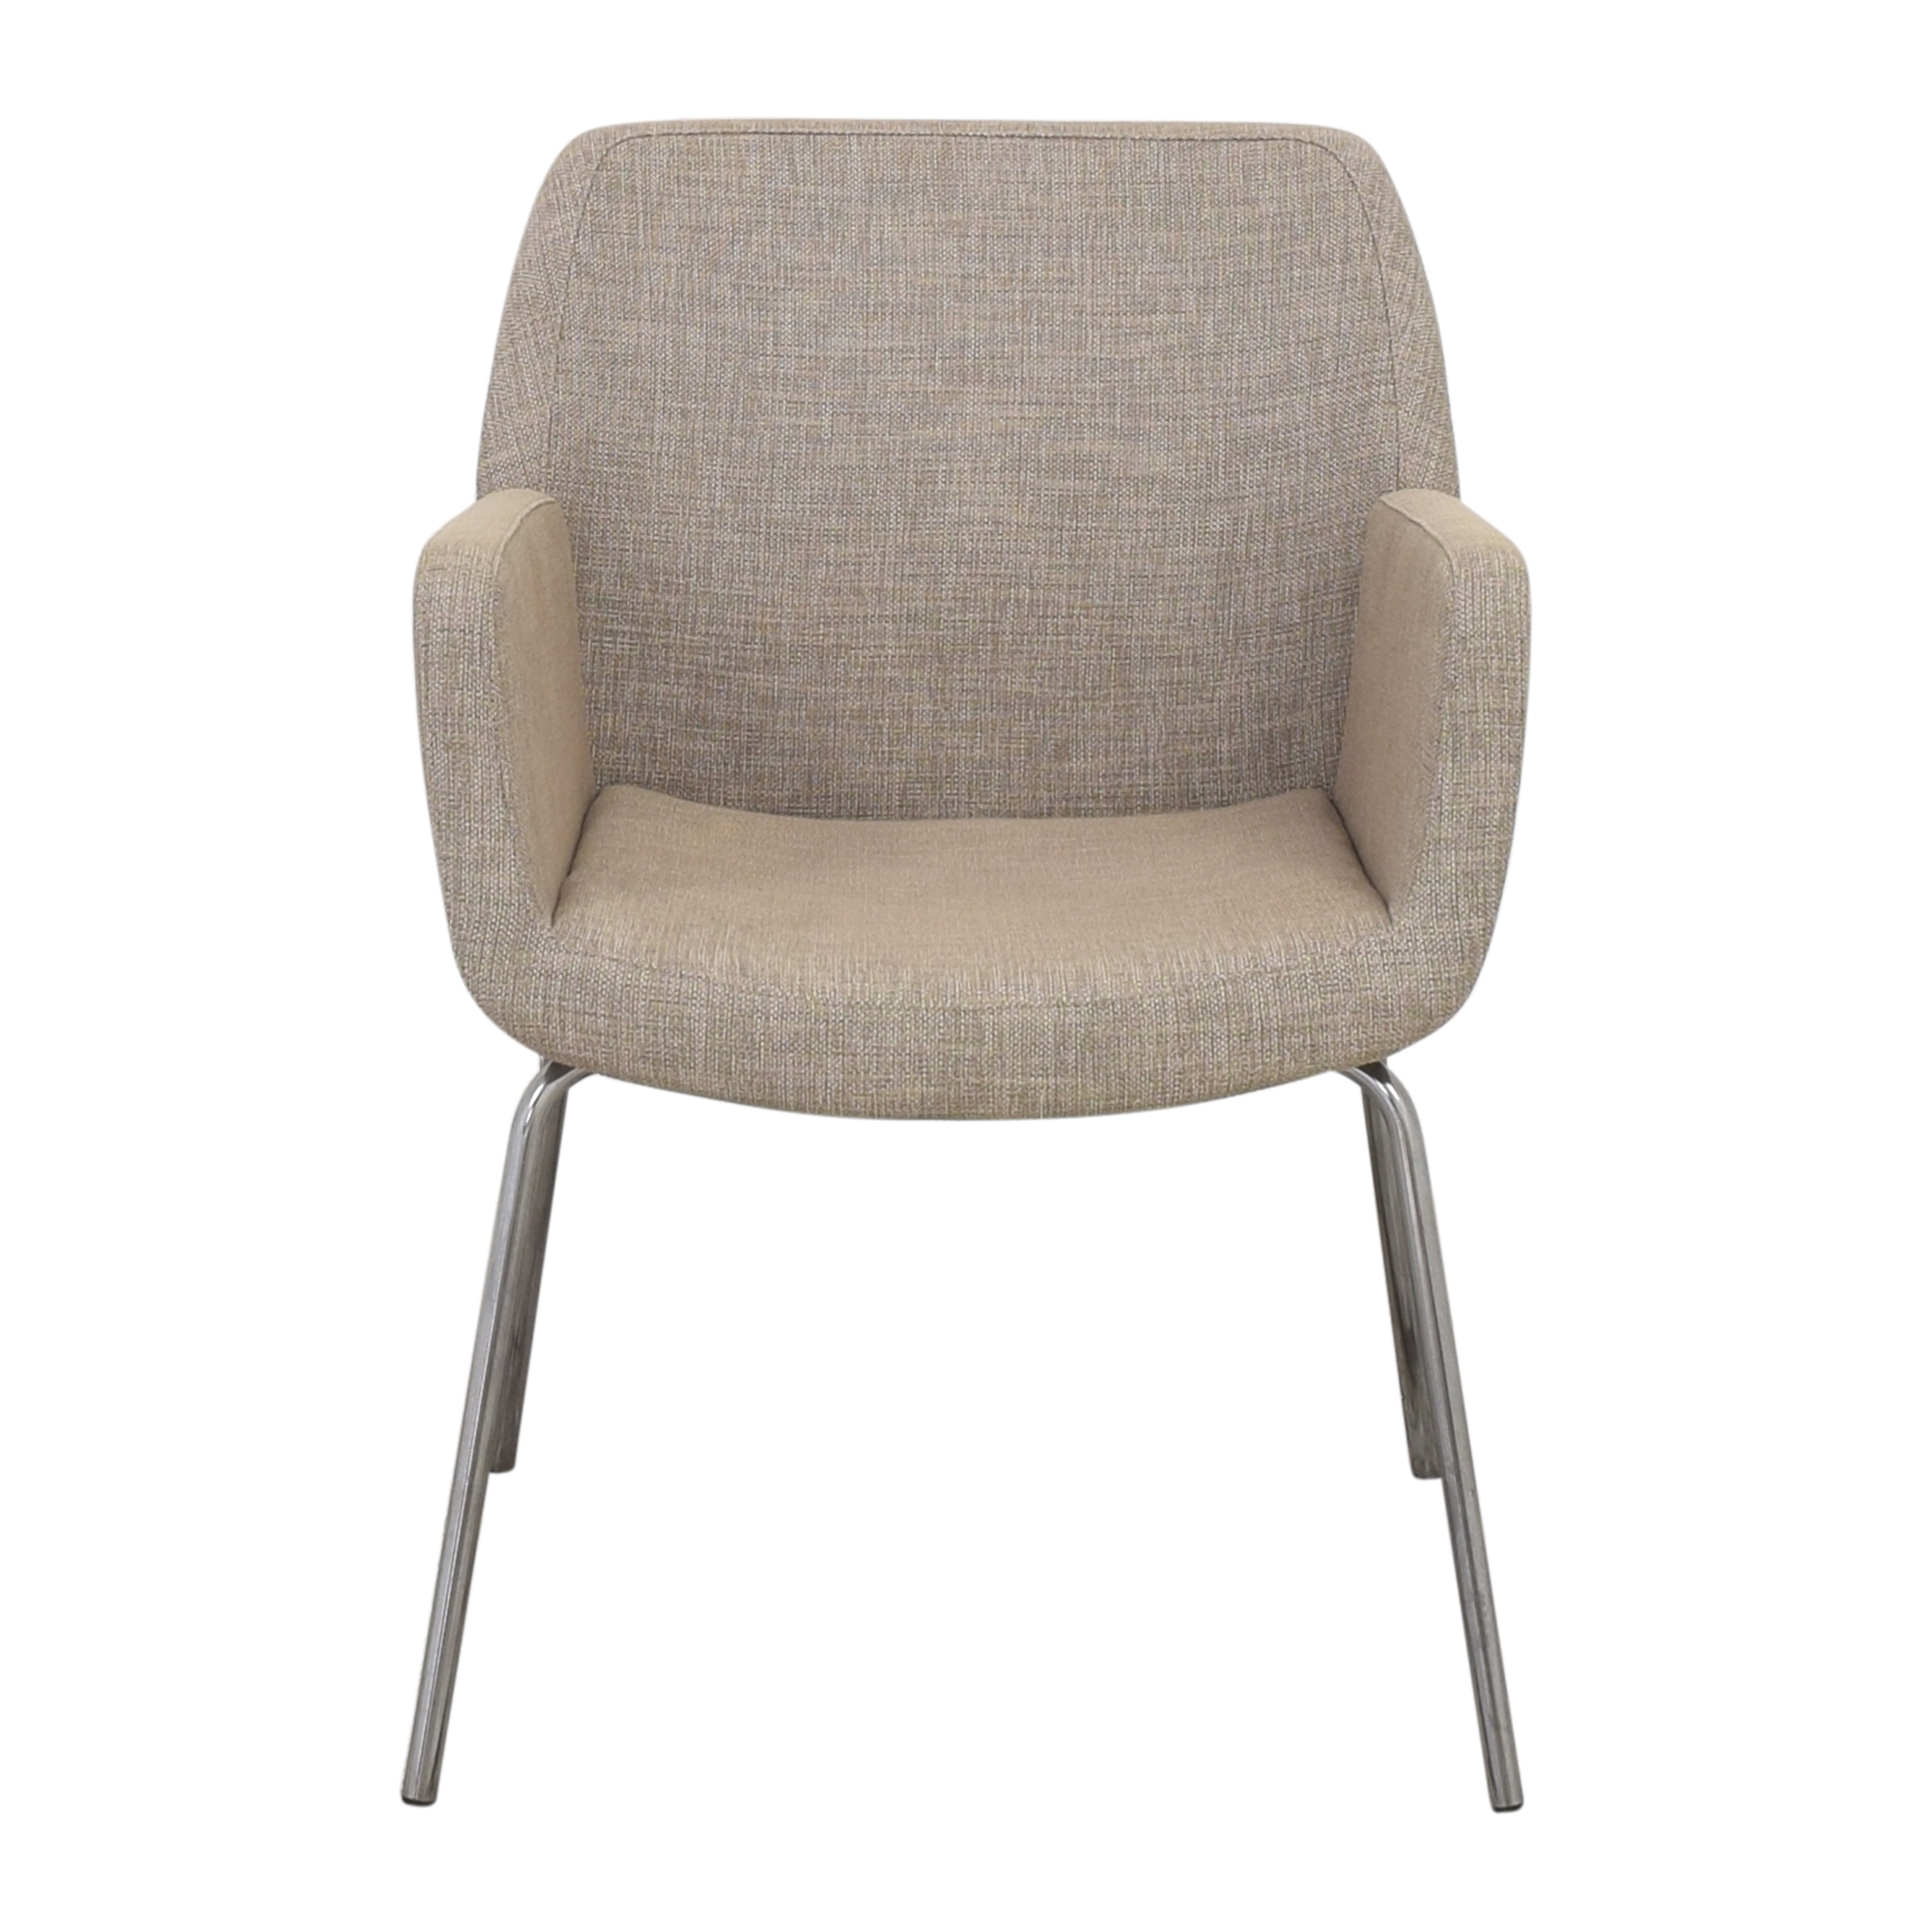 Steelcase Steelcase Coalesse Bindu Side Chair price